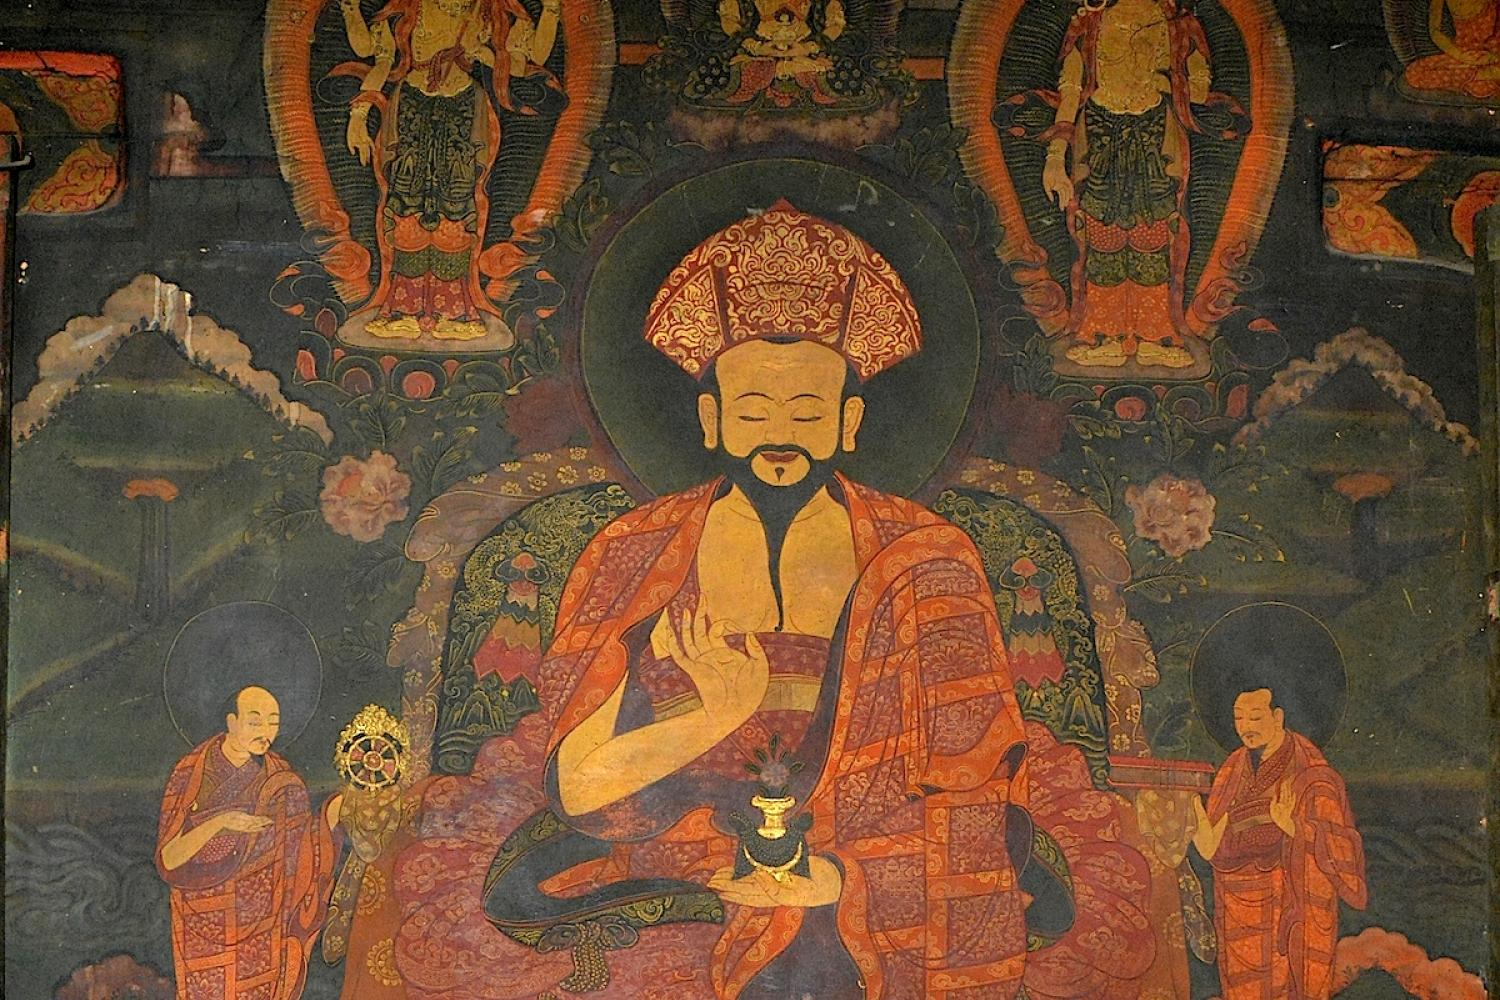 An 18th century mural of Zhabdrung Ngawang Namgyal (1594-1651), considered the founding father of Bhutan. Surrounding him are his two attendants, while above are the two manifestations of the bodhisattva of compassion, Avalokiteshvara, and the Buddha of long life, Amitayus. Below are two forms of Tara and a Drukpa Kagyu Lama. Click on image to enlarge.